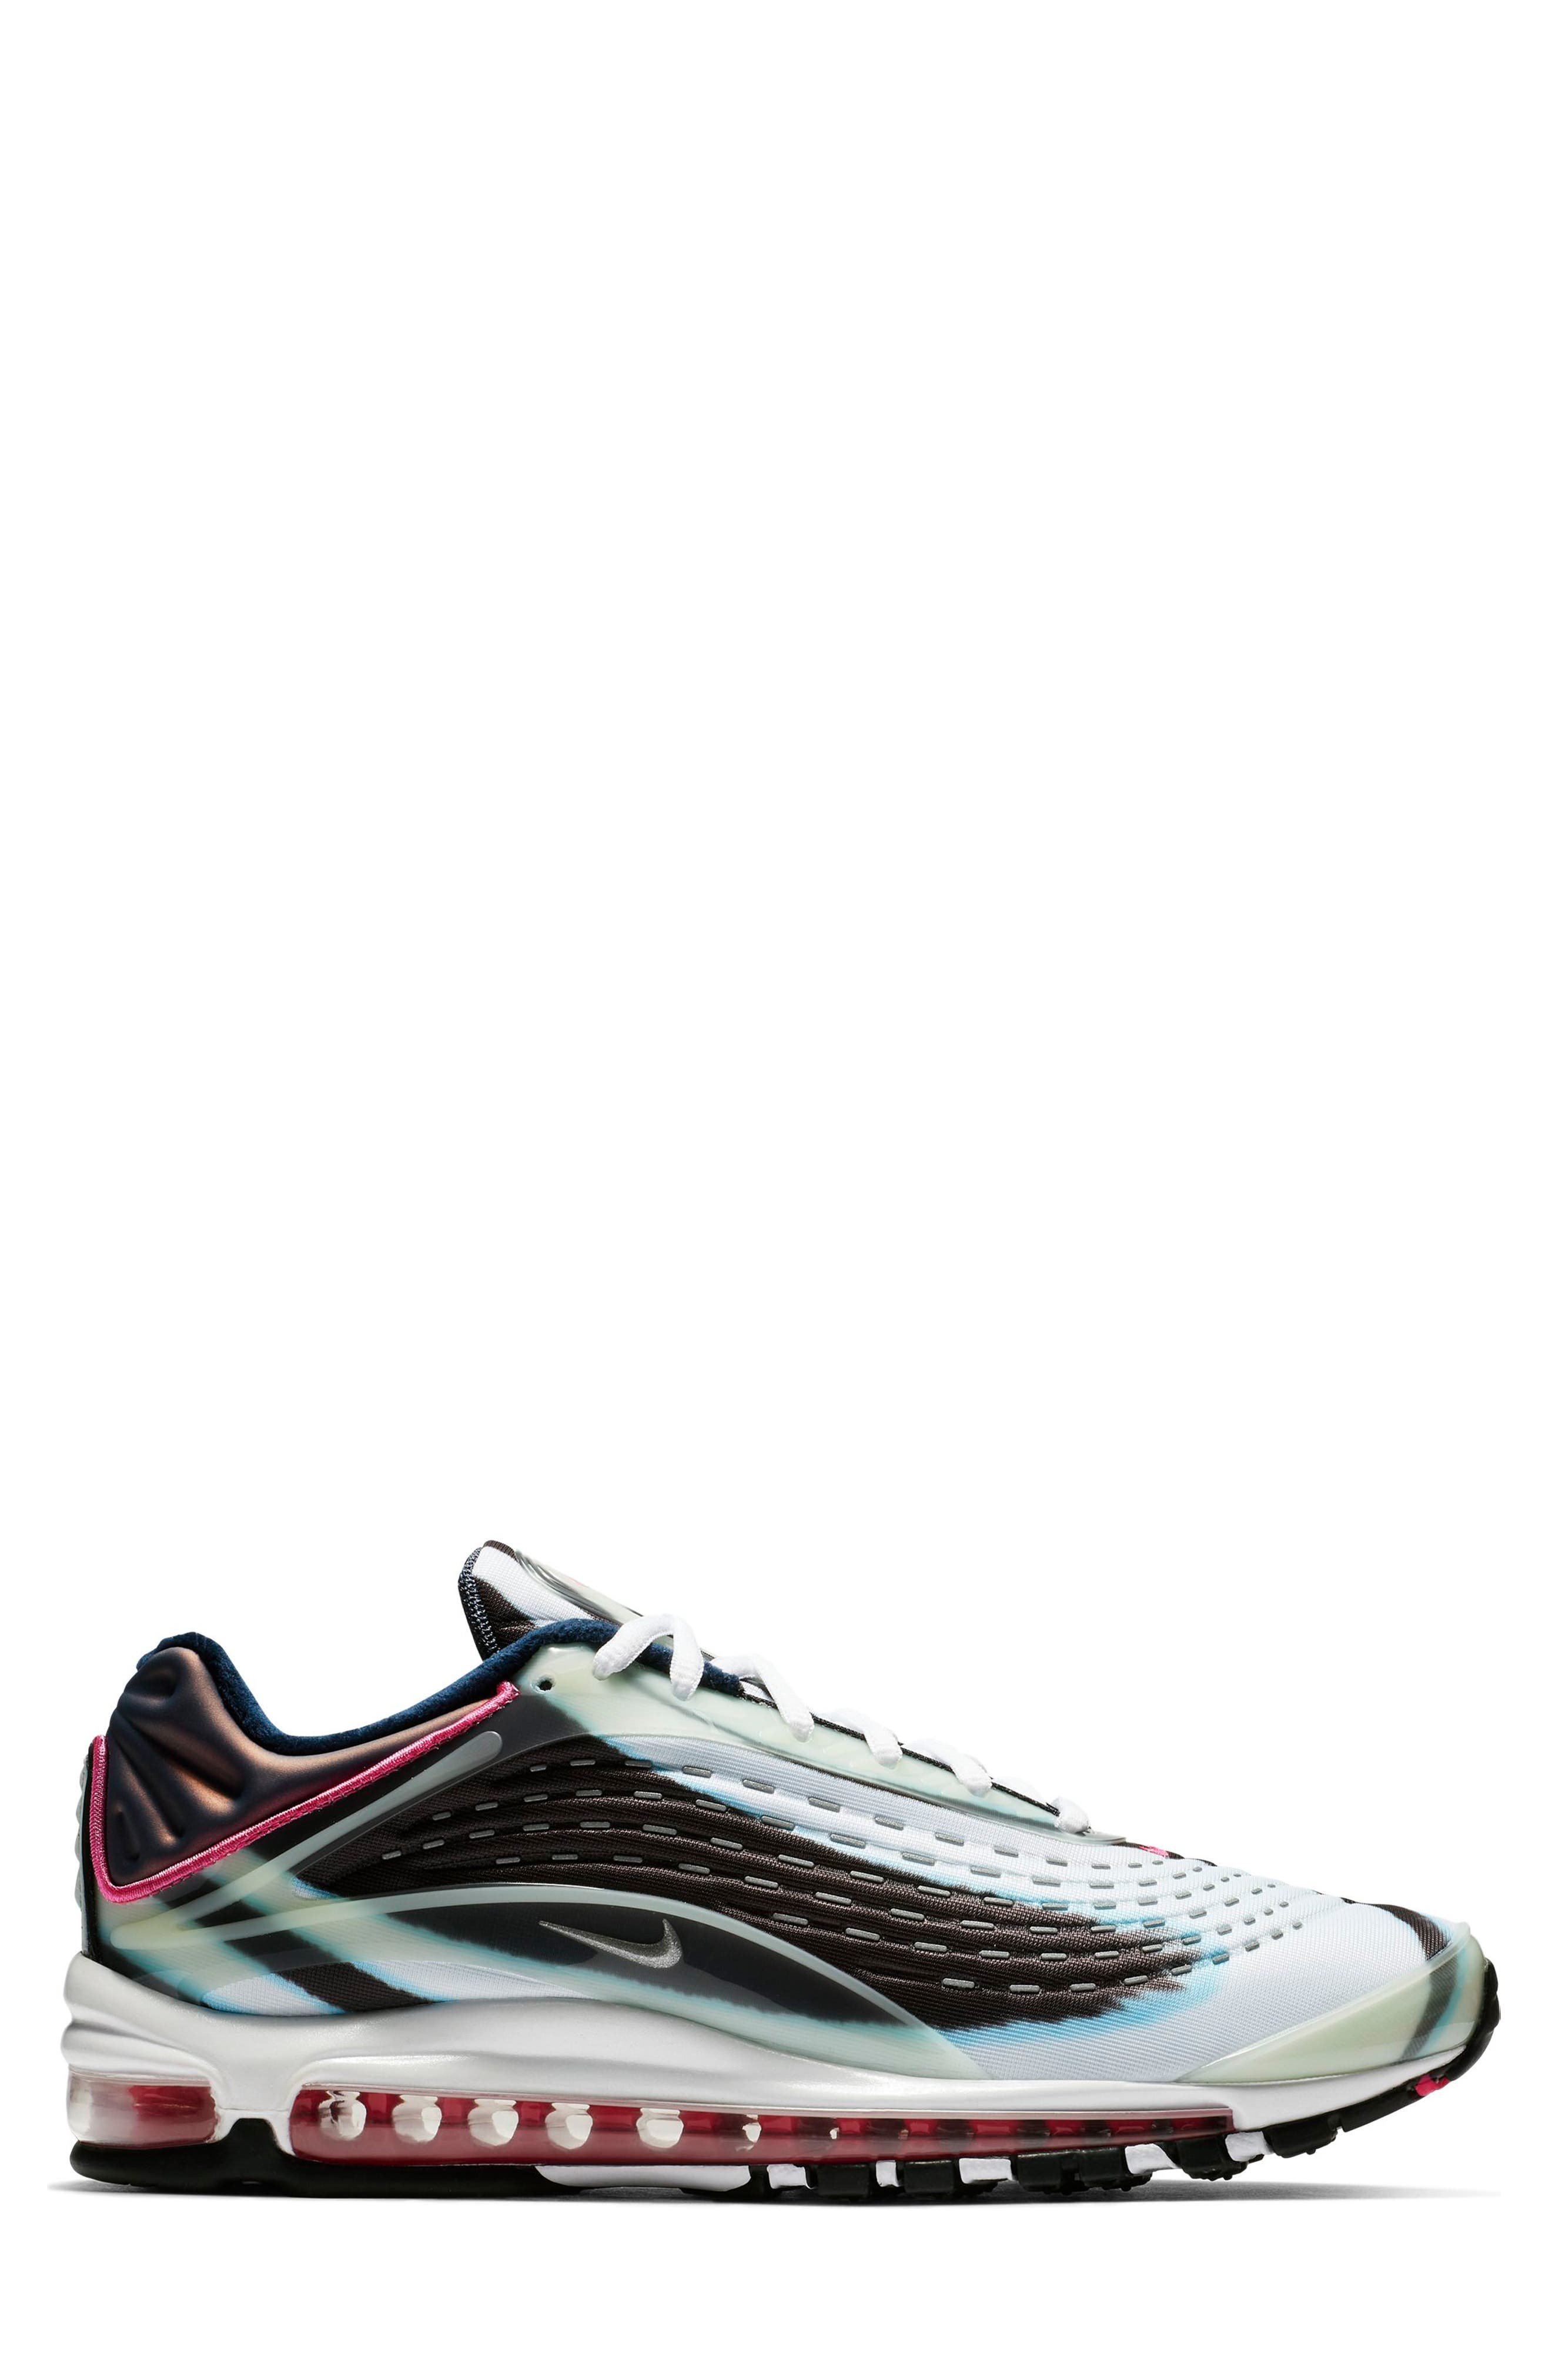 Air Max Deluxe Sneaker,                             Alternate thumbnail 3, color,                             GREEN/ SILVER/ OBSIDIAN/ BLACK